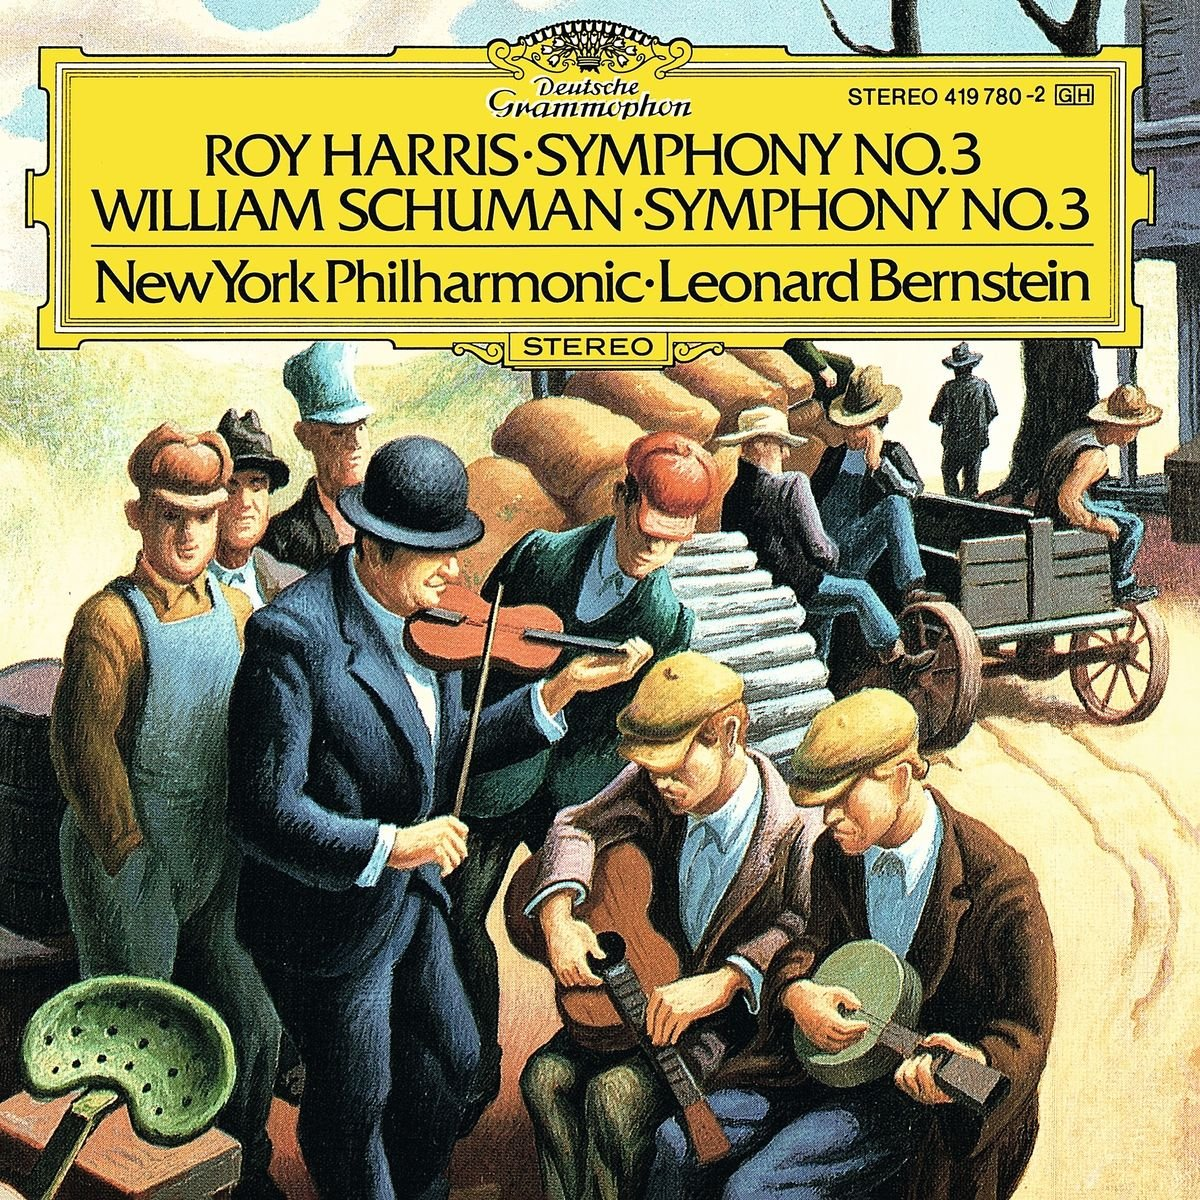 Roy Harris: Symphony No. 3 / William Schuman: Symphony No. 3 by Deutsche Grammphon